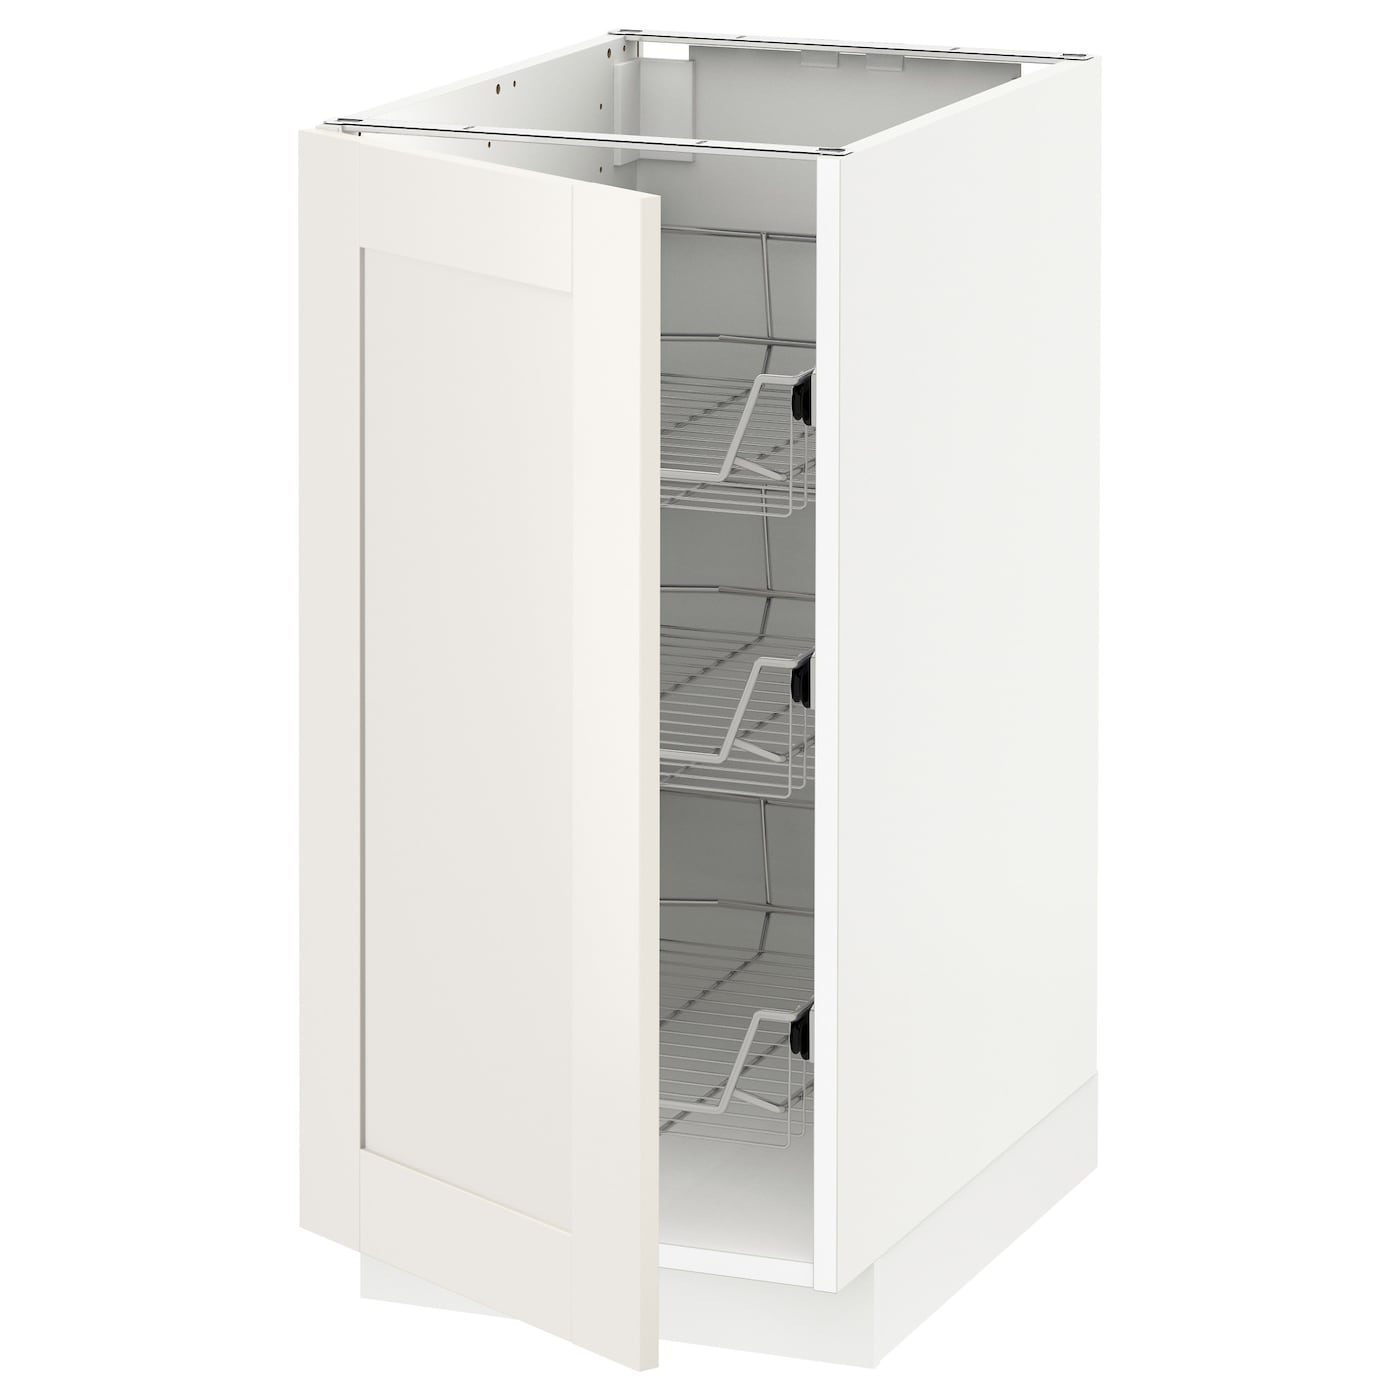 metod base cabinet with wire baskets white s vedal white 40x60 cm ikea. Black Bedroom Furniture Sets. Home Design Ideas